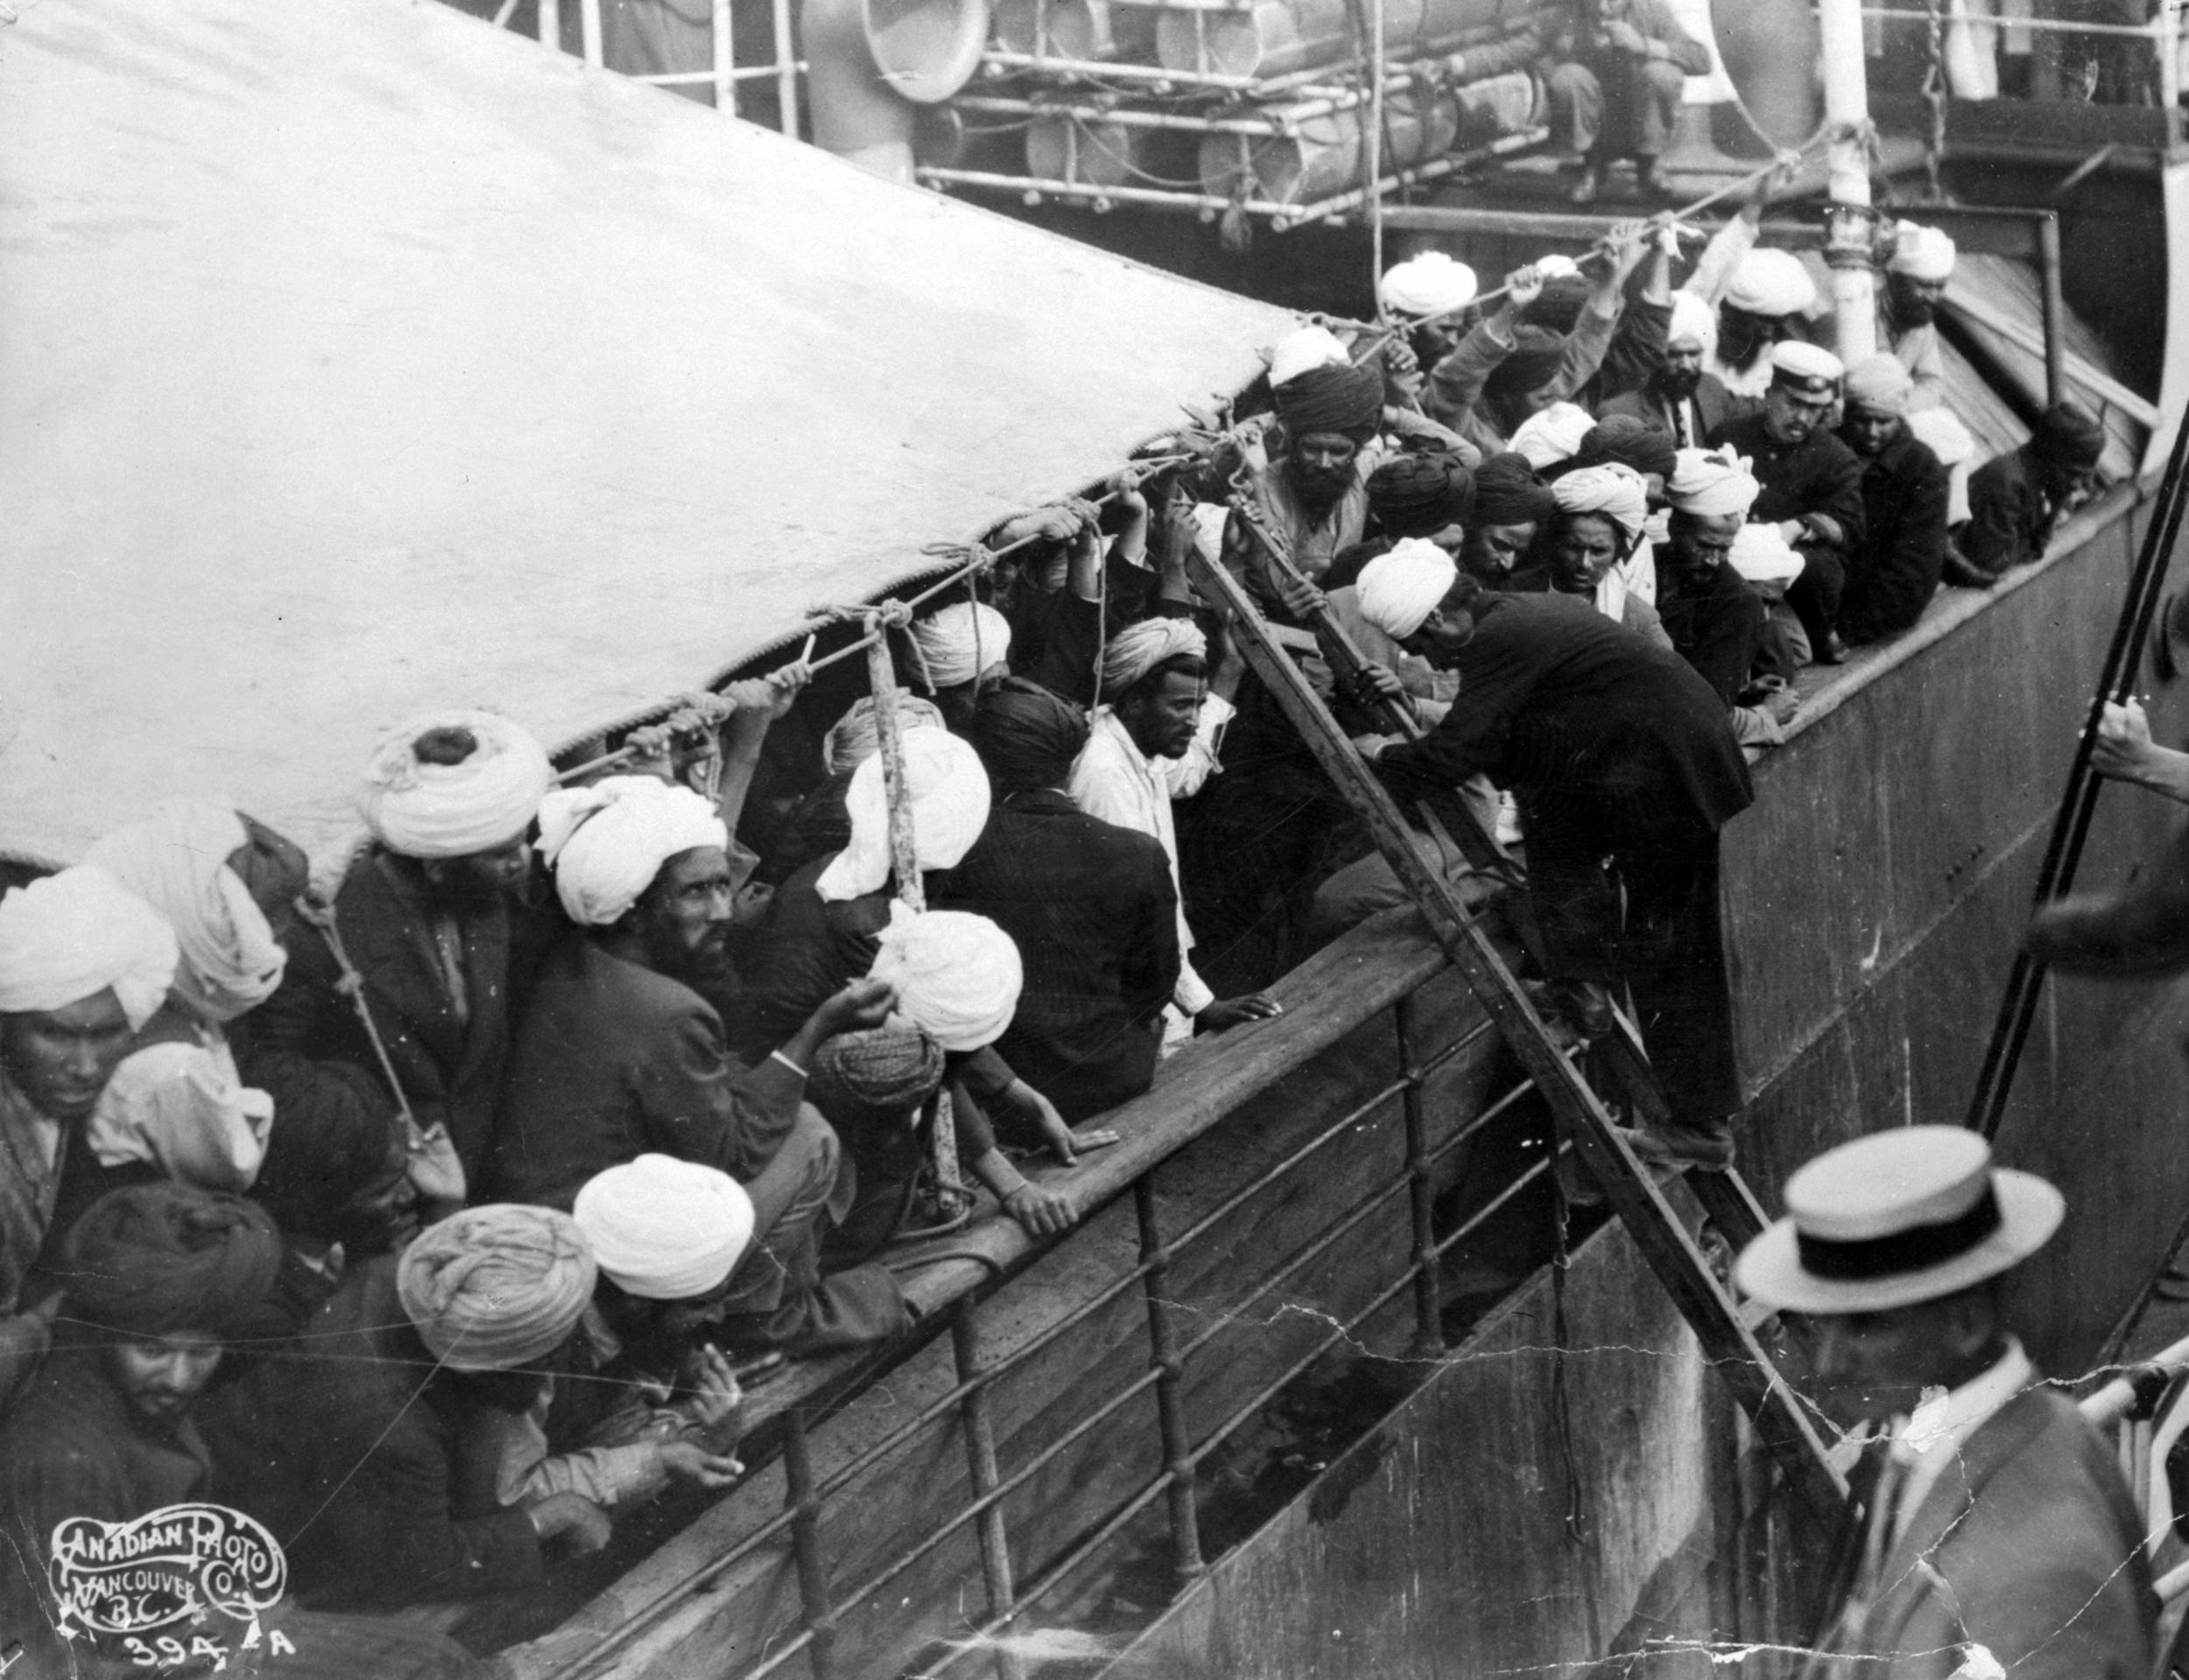 Komagata Maru Incident, 1914